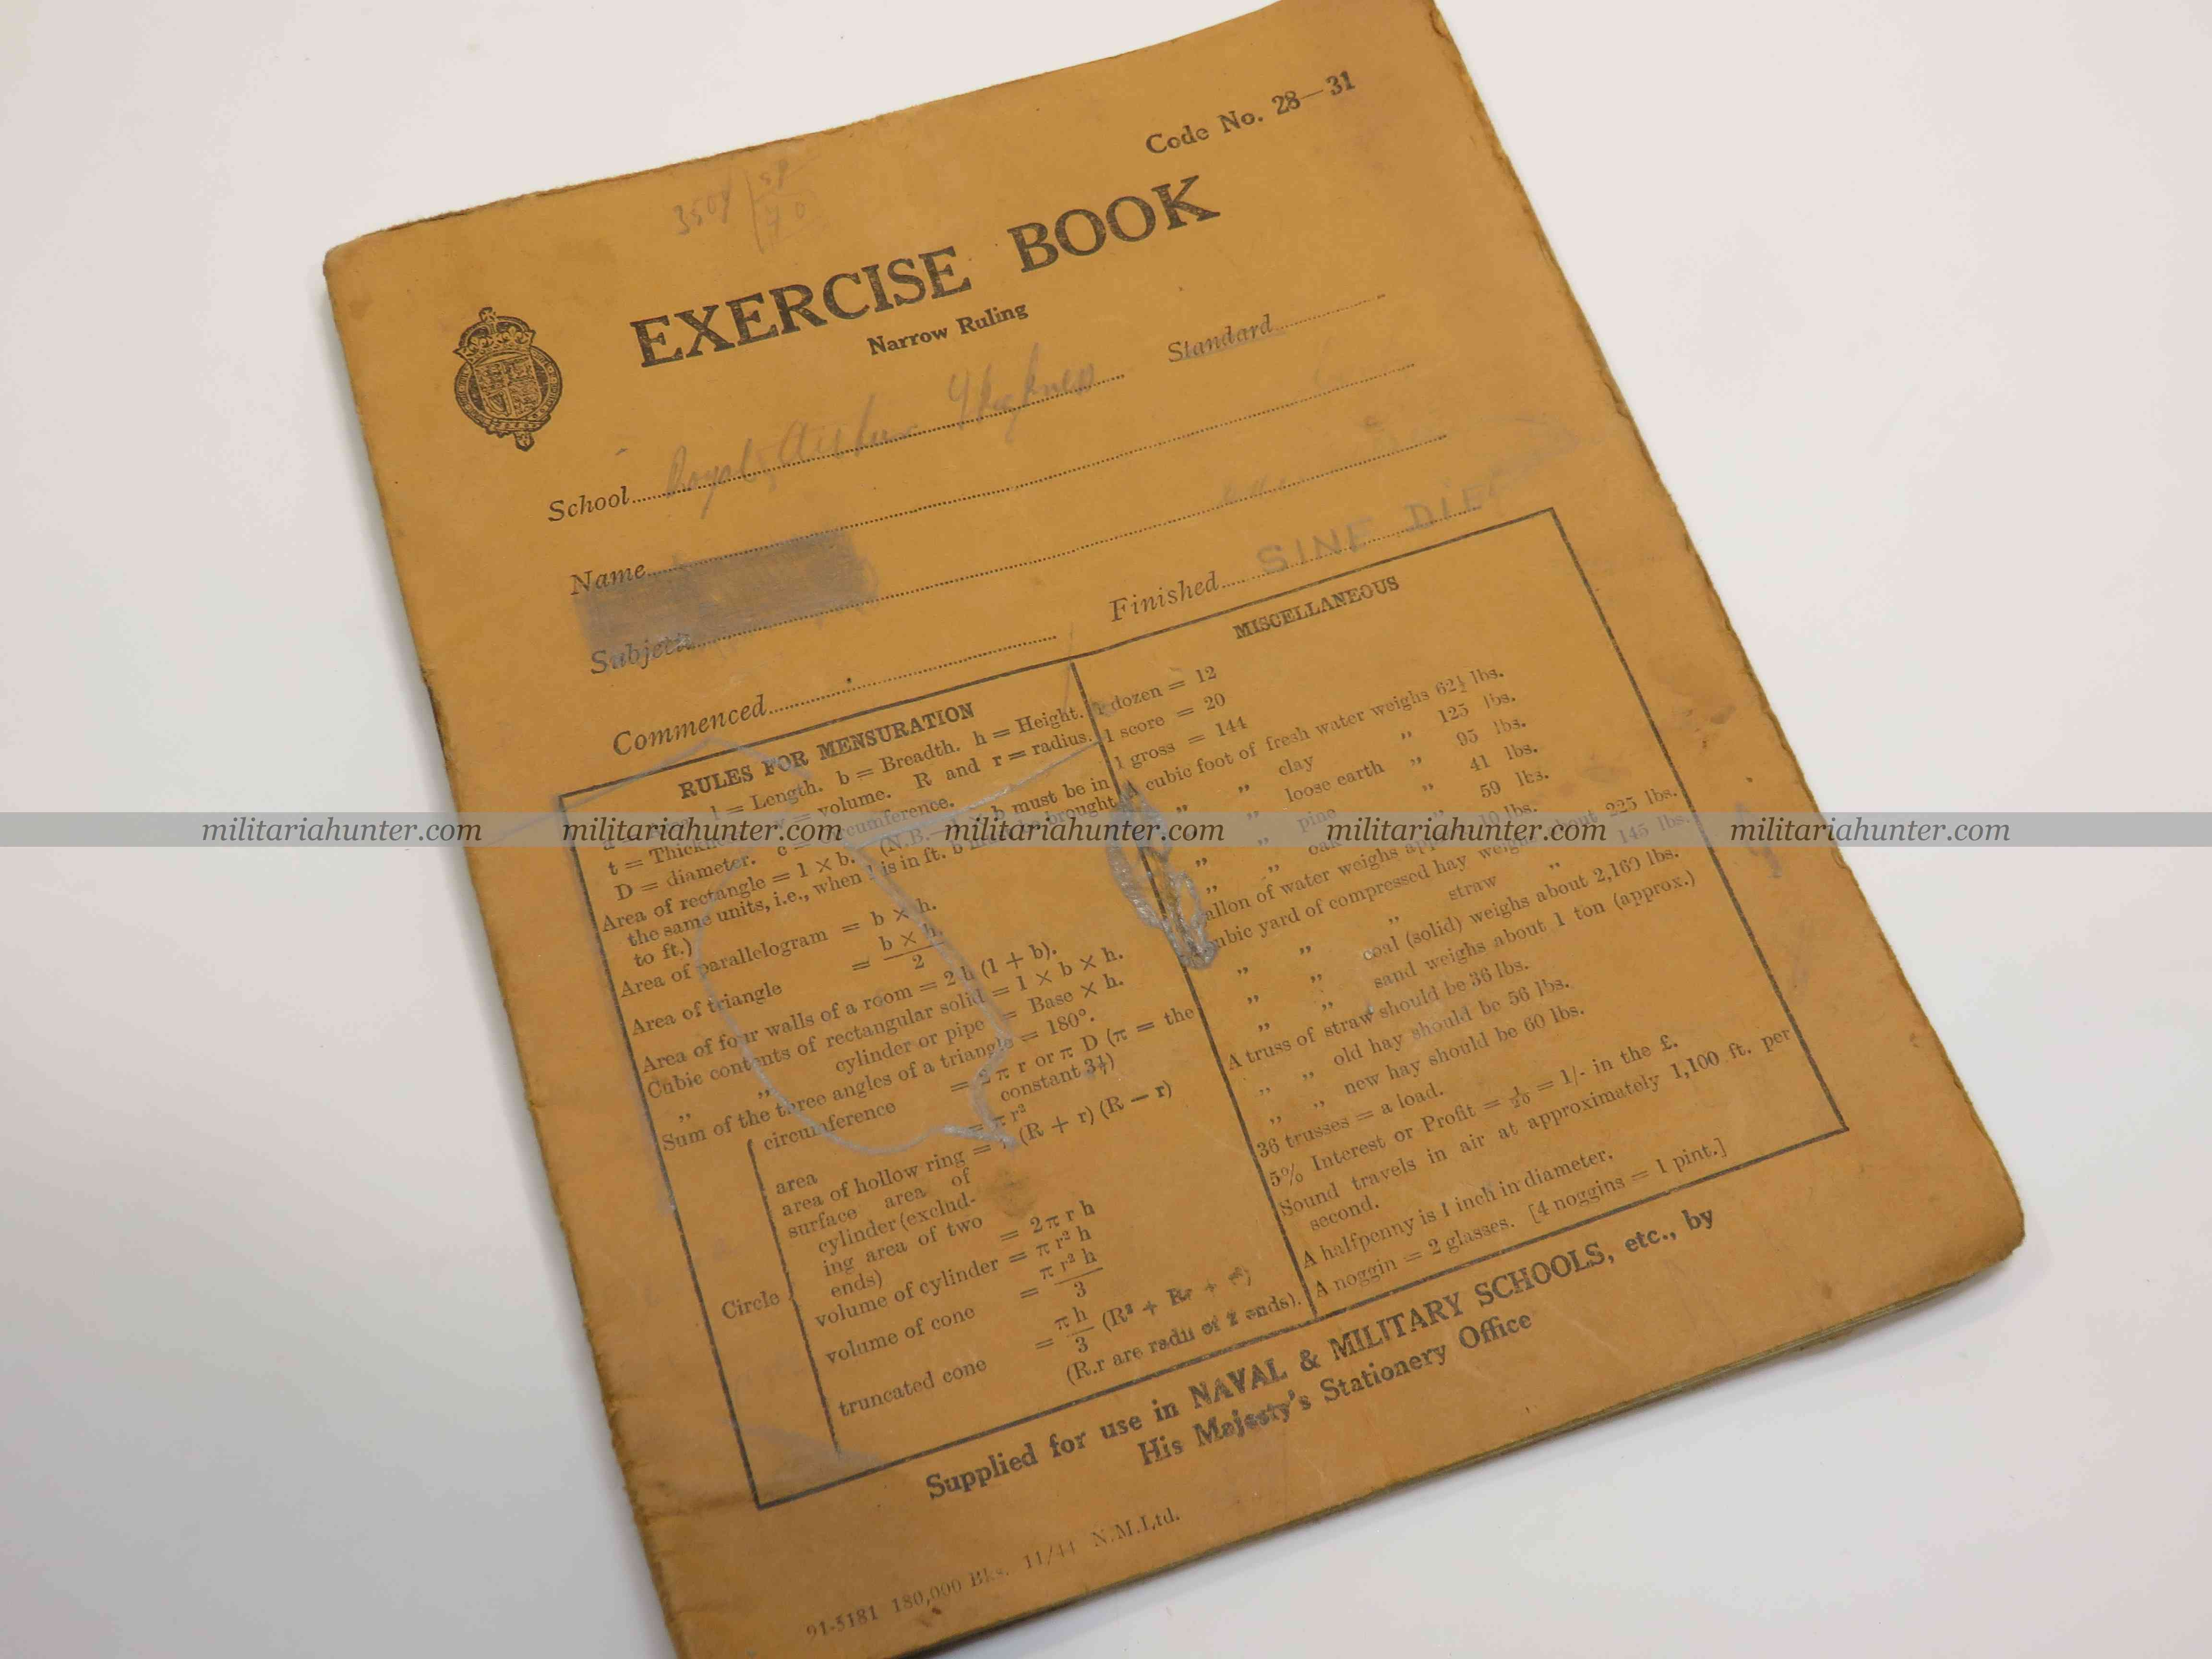 militaria : 1944 exercice book, Royal Air Force - cahier d'exercices instruction